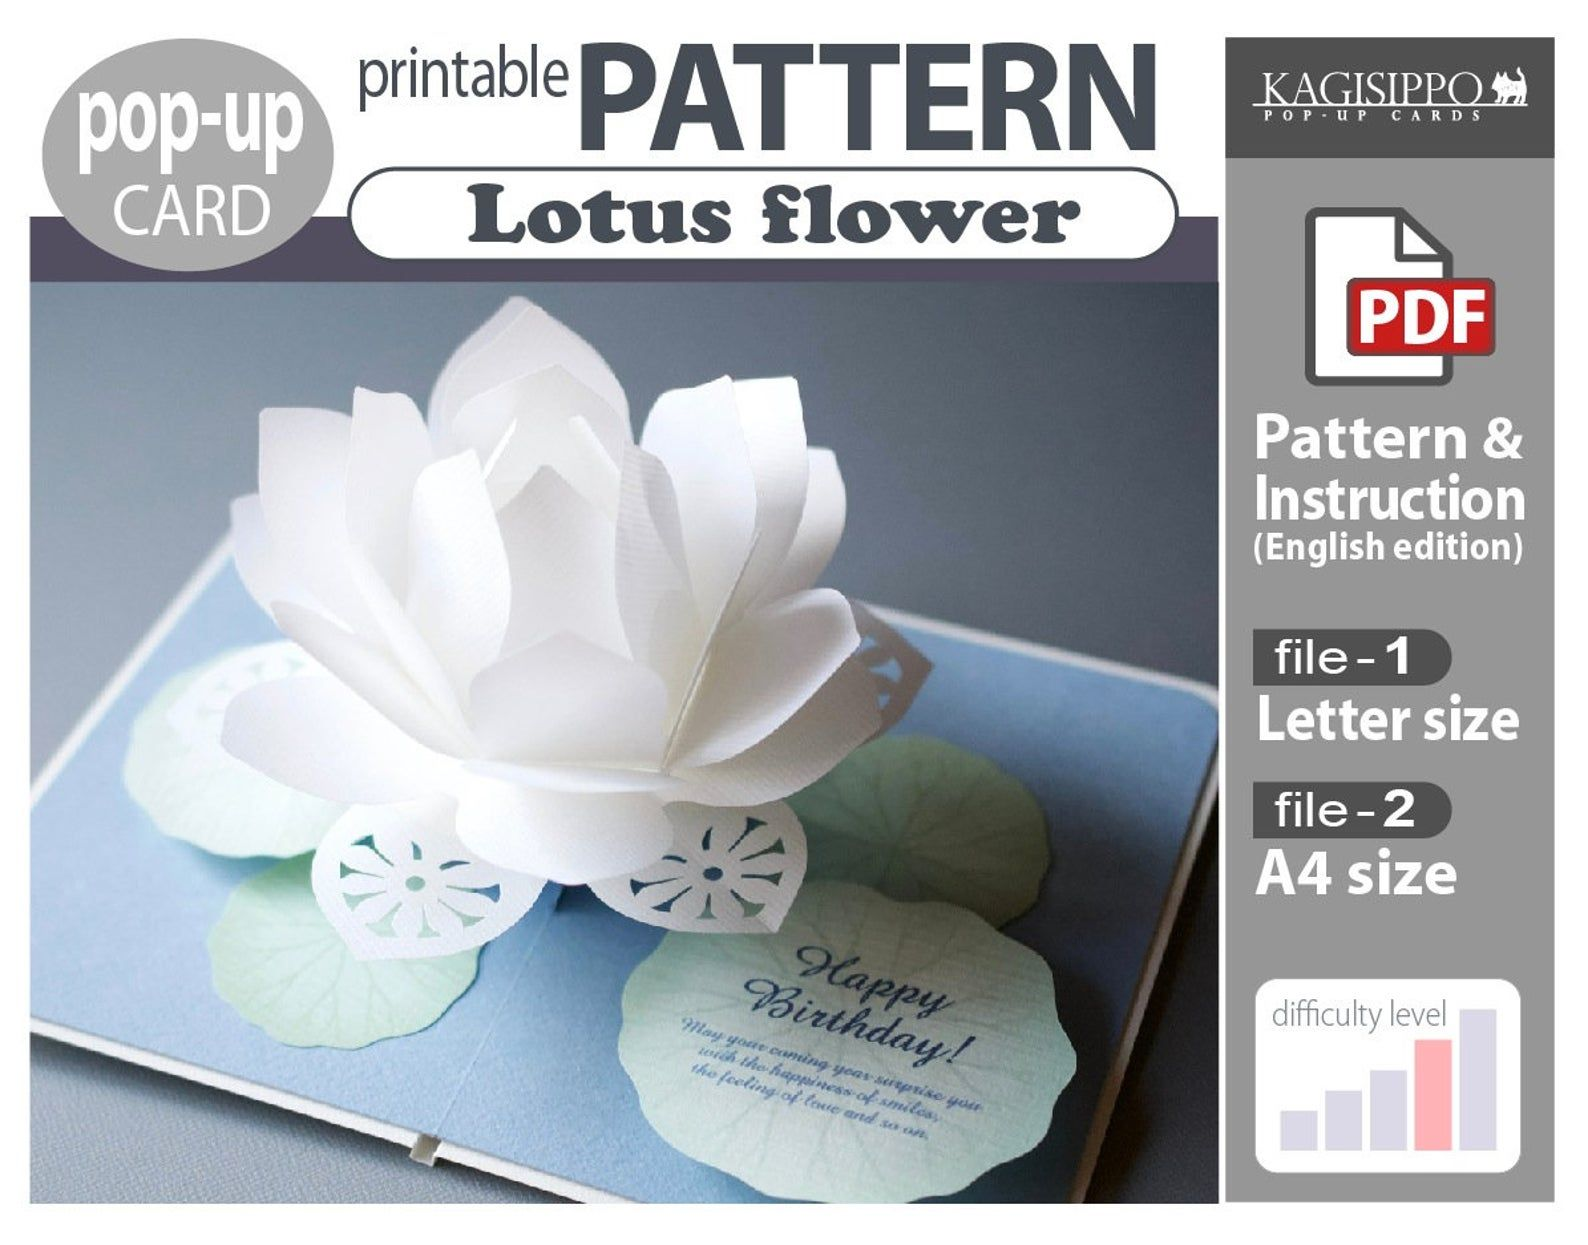 Pattern Pop Up Card Lotus Flower Digital Download File Etsy In 2020 Card Patterns Printable Patterns Cards